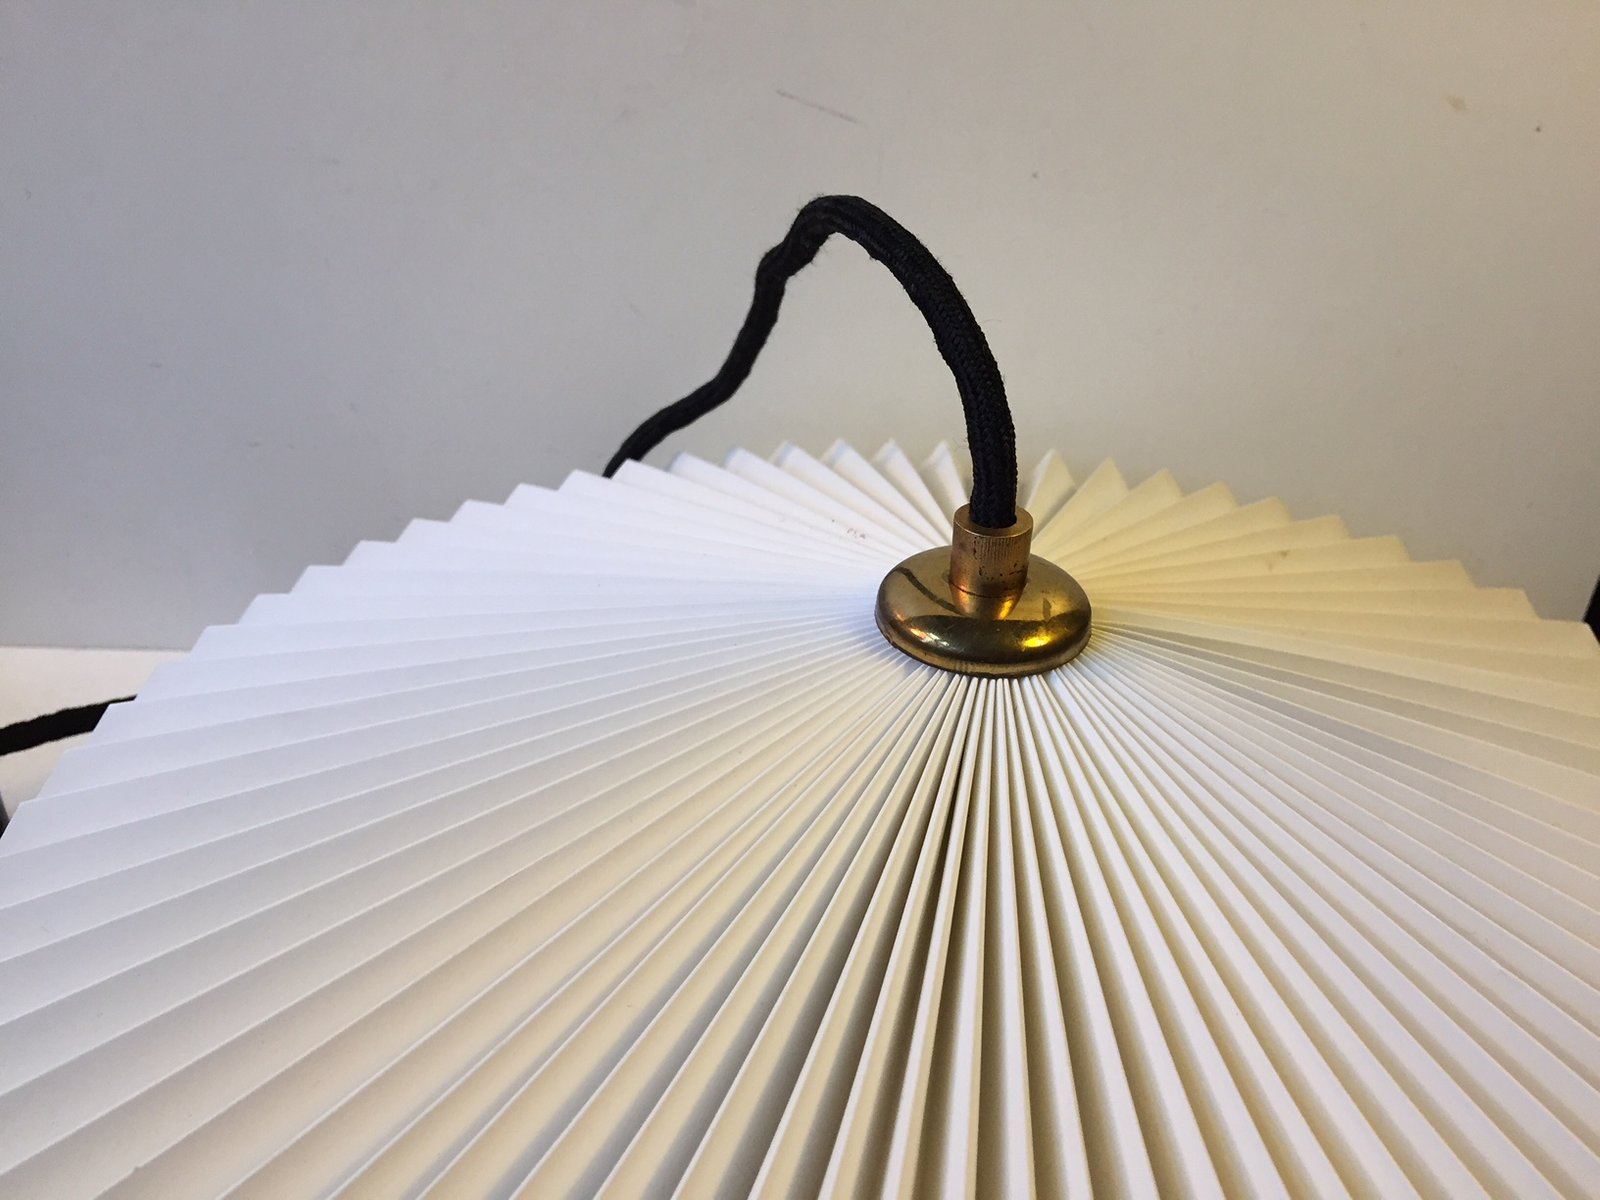 Danish Modernist Pendant Lamp from Le Klint 1970s for sale at Pamono